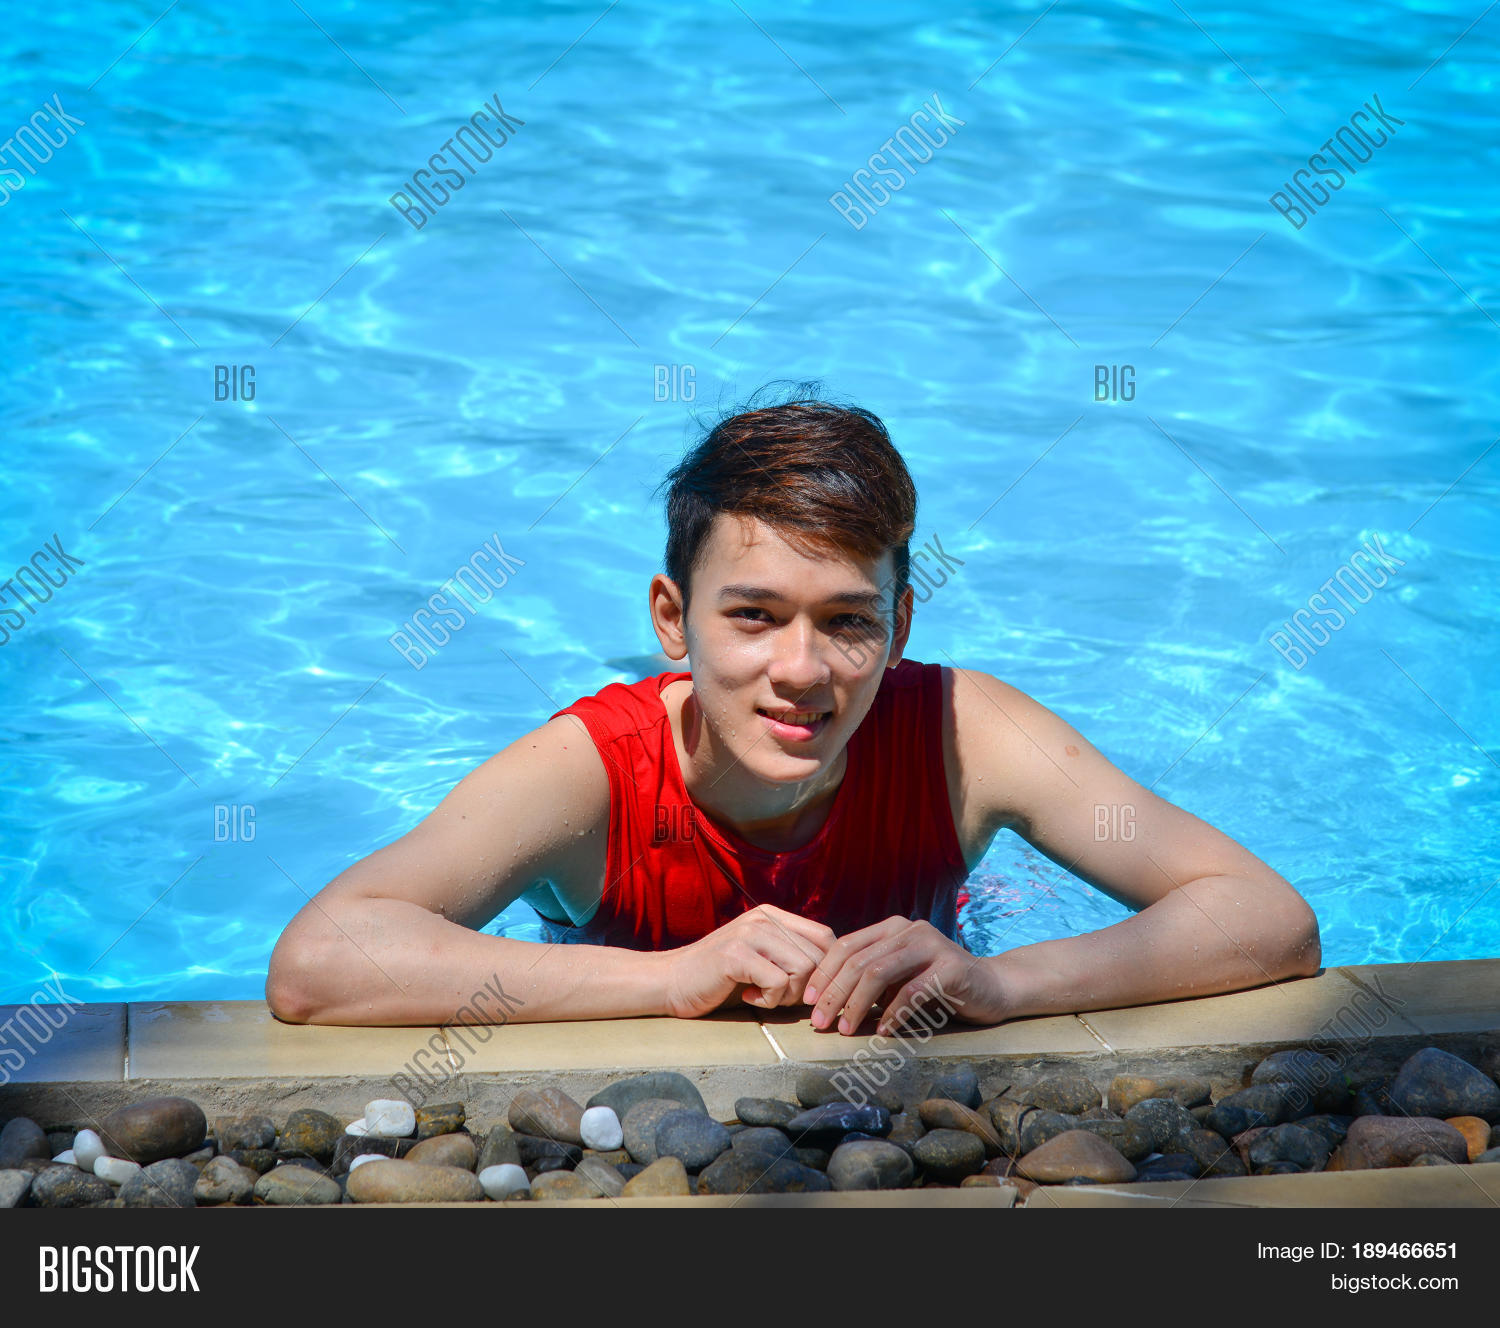 pool asian single men Personals & singles in cairo just dipping my toes in the pool here : white, black women and black men, asian, latino, latina, and everyone else.